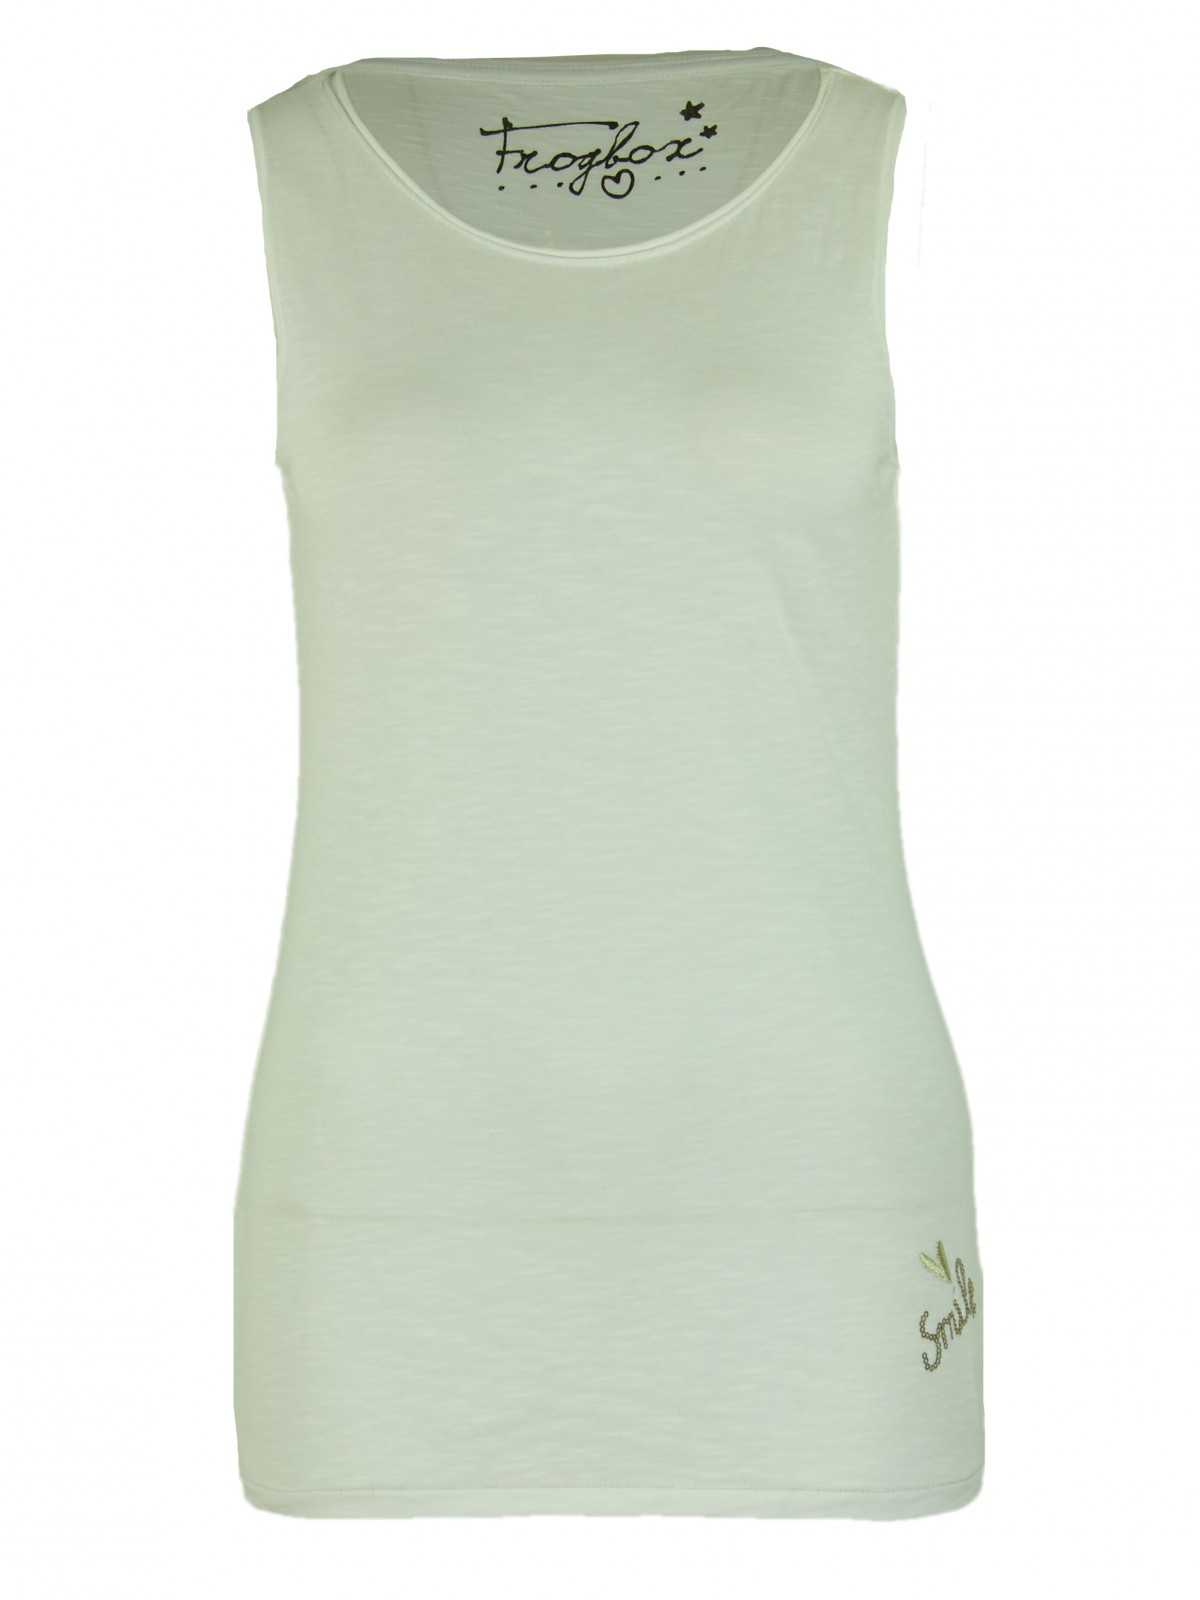 Basic Tanktop in Weiss